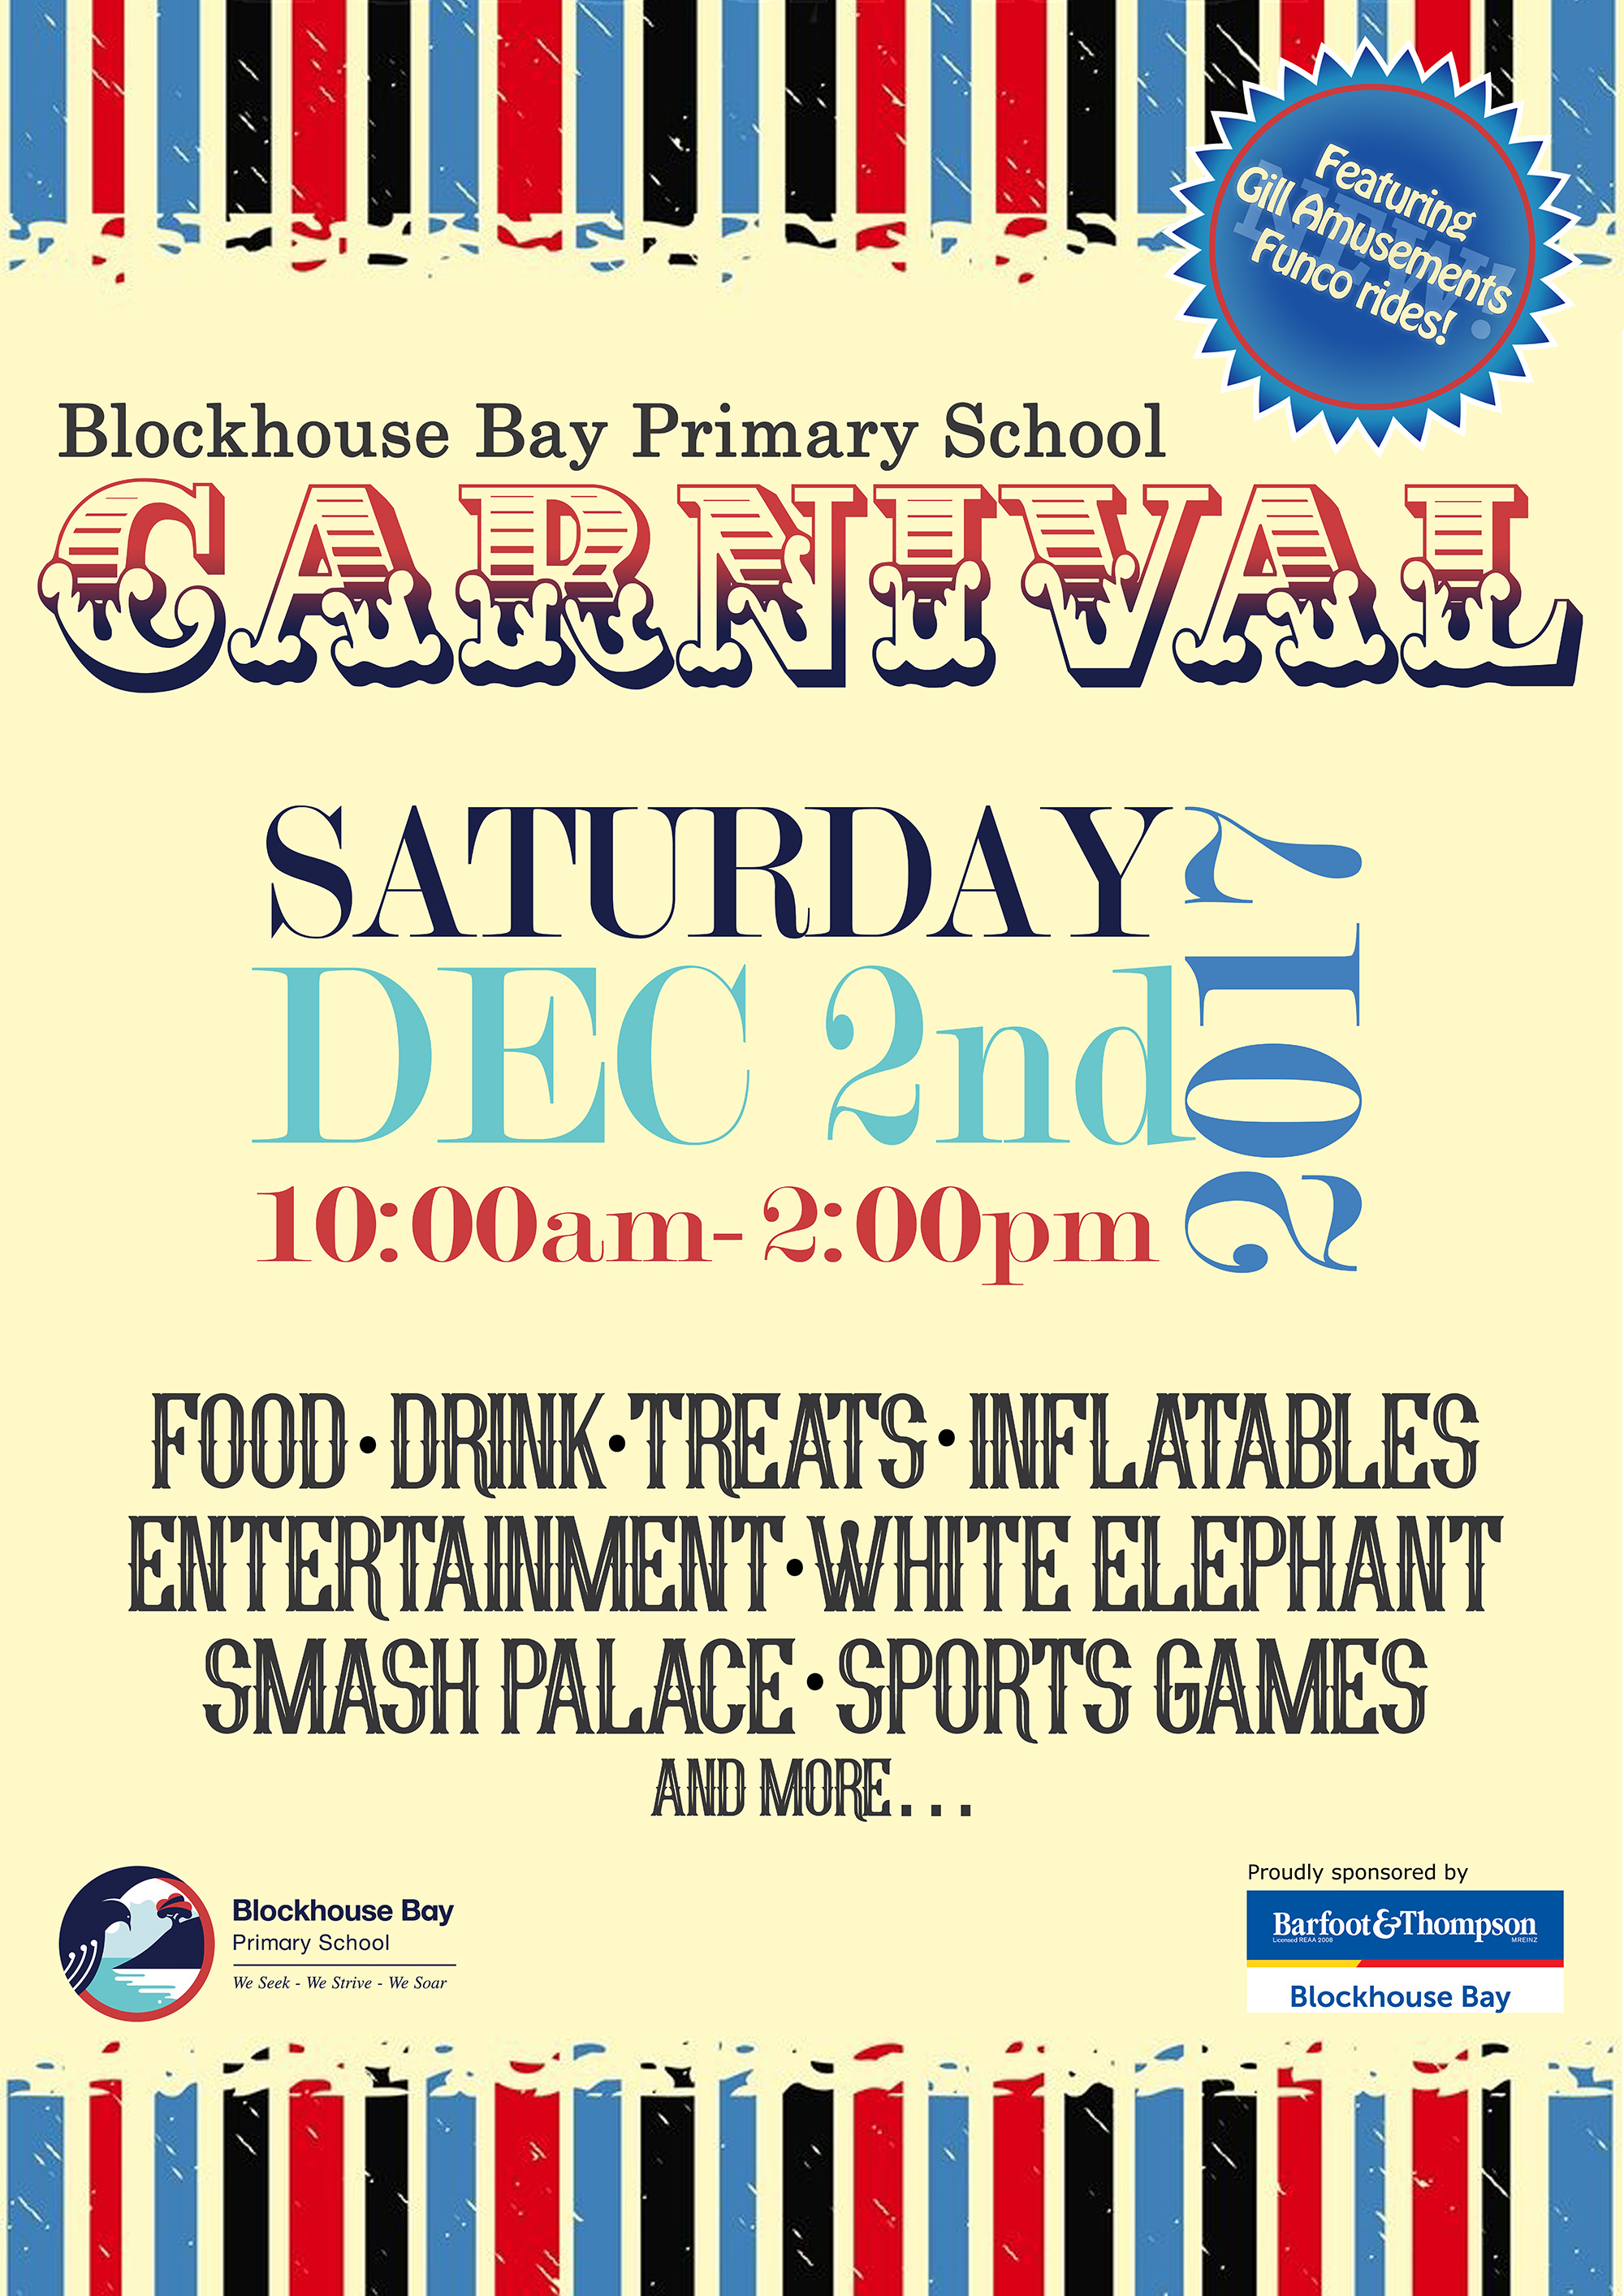 Blockhouse Bay Primary School - ** CARNIVAL **